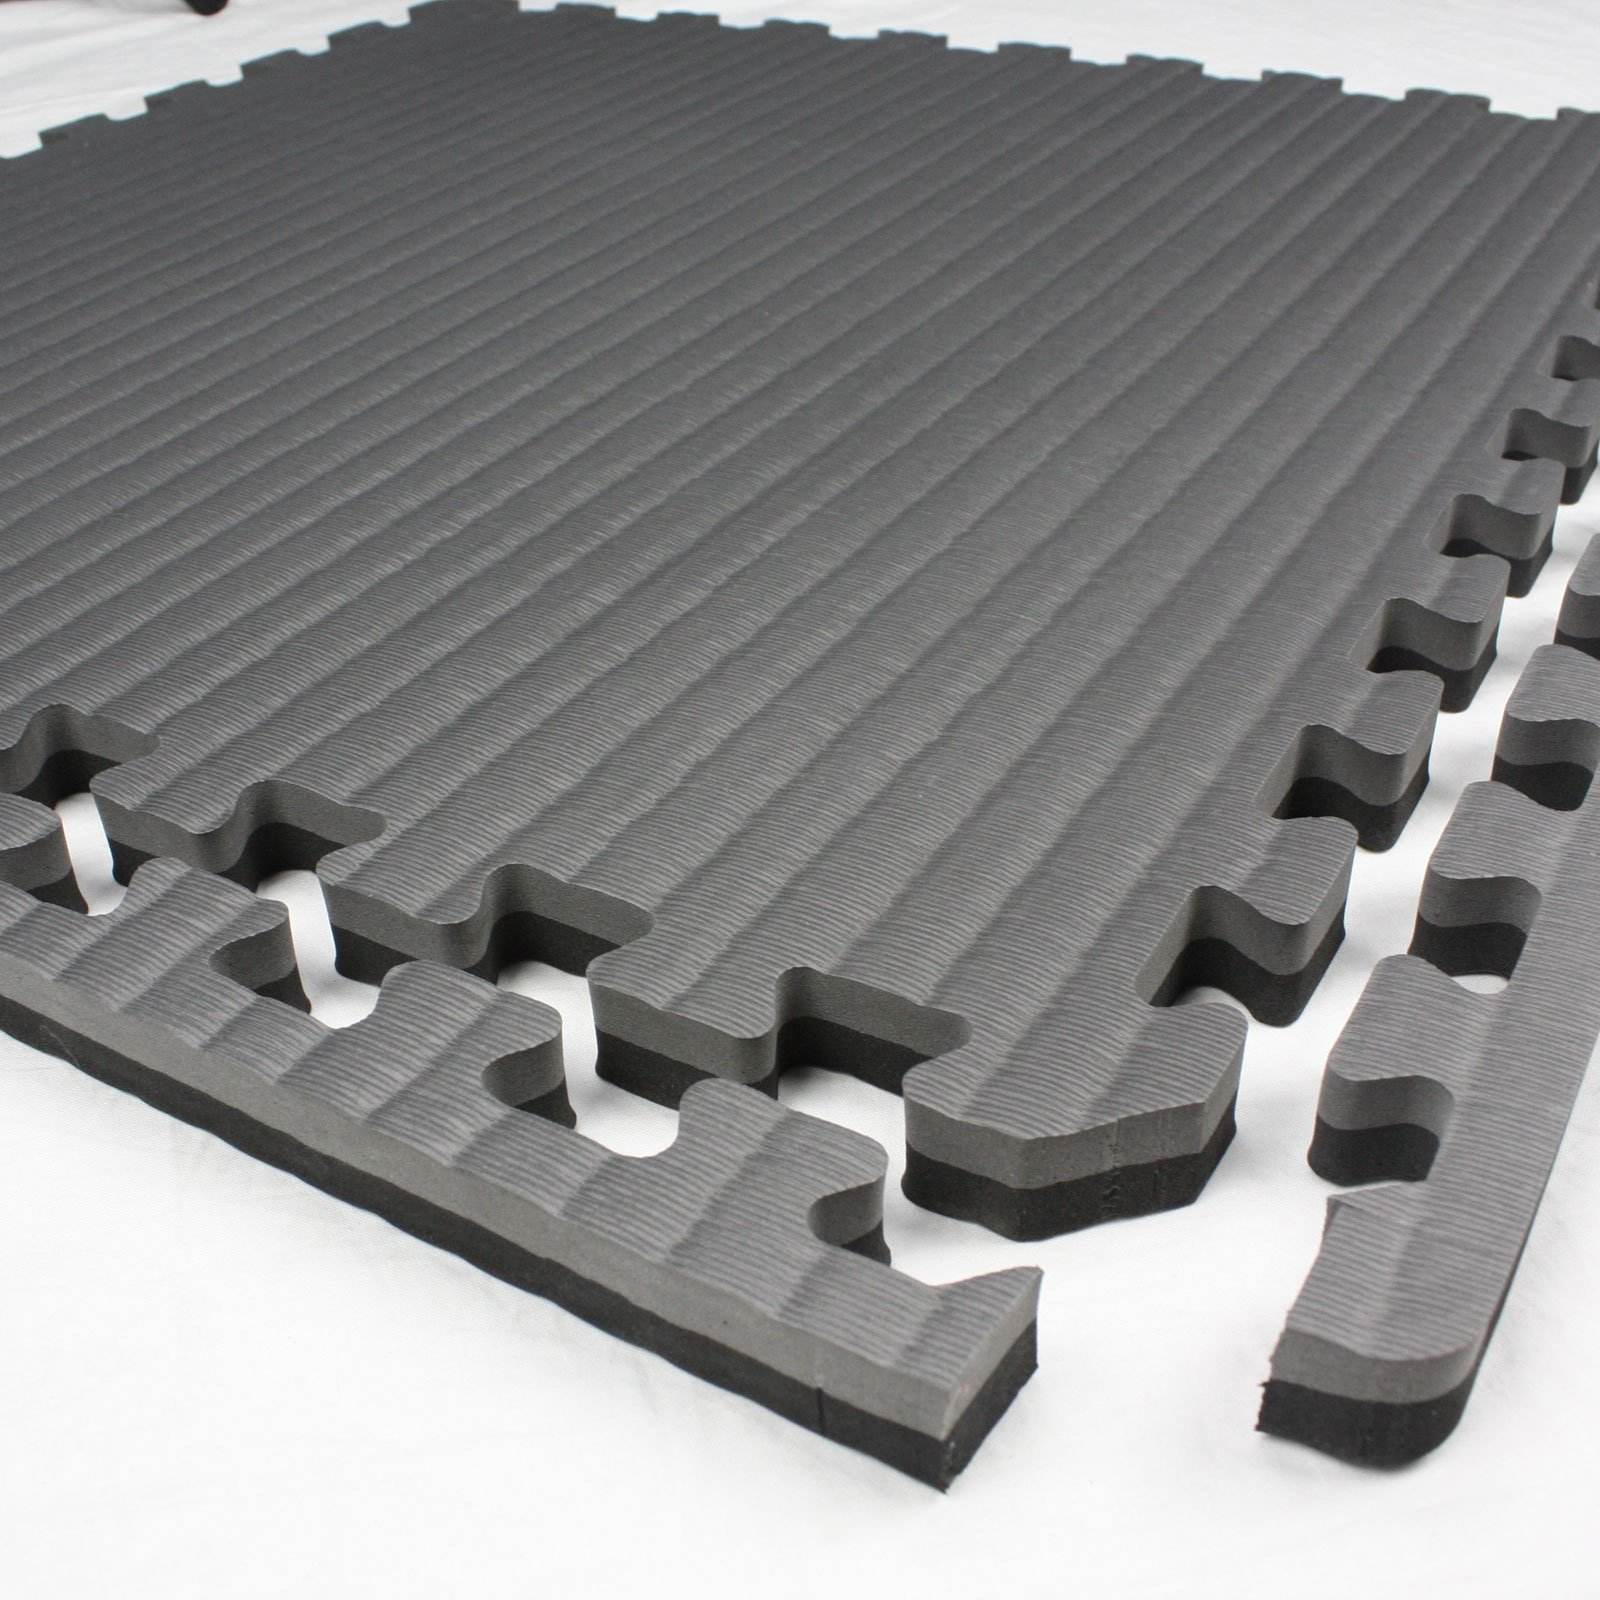 IncStores - Tatami Foam Tiles (Black/Grey, 16 Tiles) - Extra Thick mats Perfect for Martial Arts, MMA, Lightweight Home Gyms, p90x, Gymnastics, Yoga, Cardio, Aerobic, and Exercises by IncStores (Image #2)